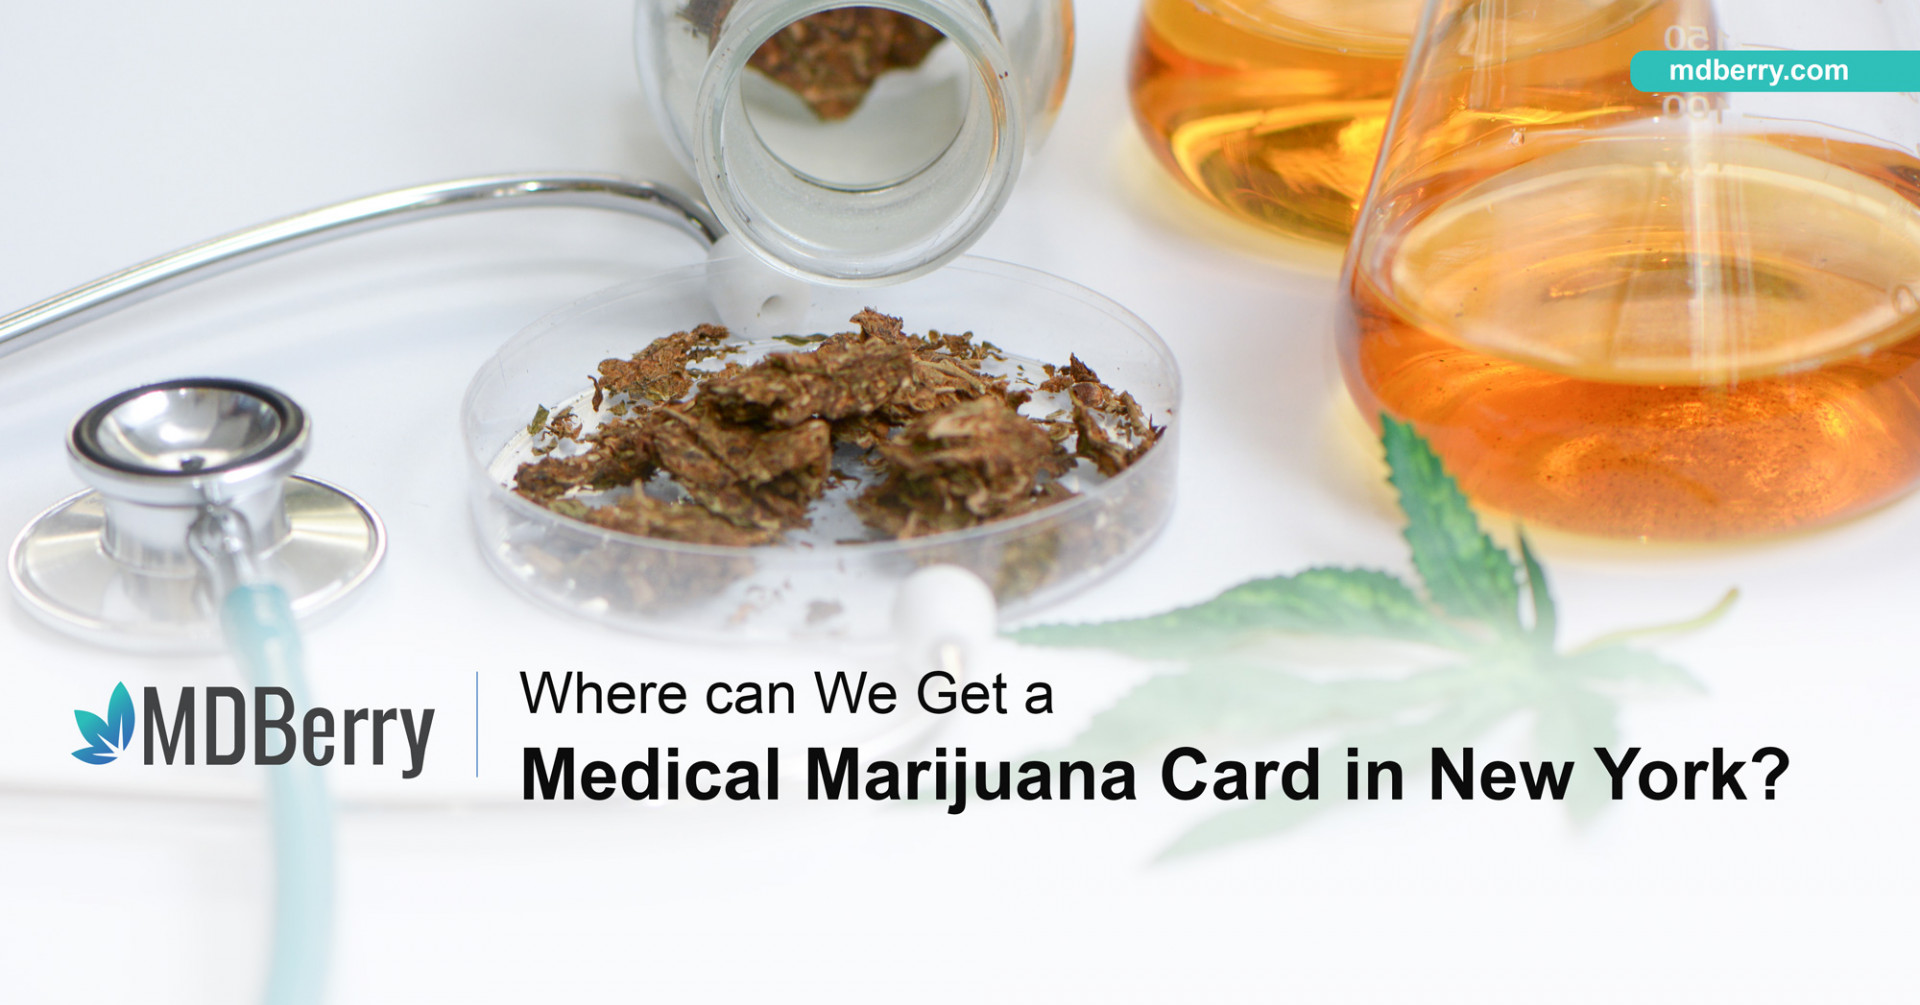 Where can we get a Medical Marijuana Card in New York?